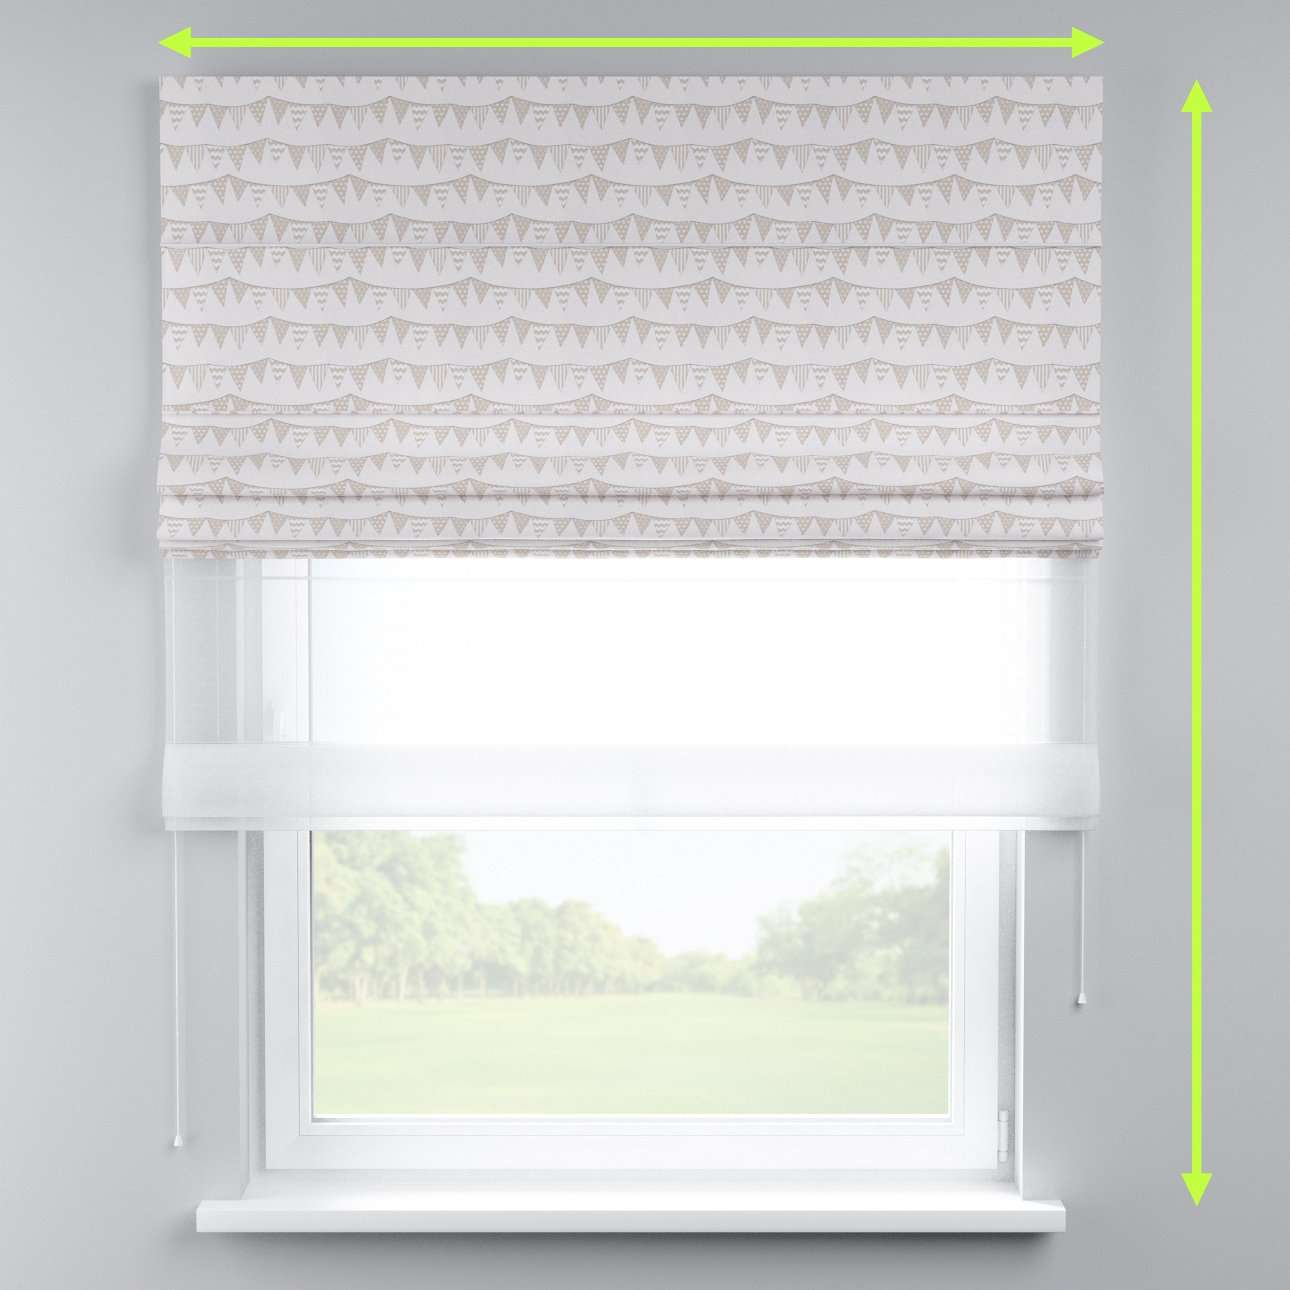 Voile and fabric roman blind (DUO II) in collection Marina, fabric: 140-65